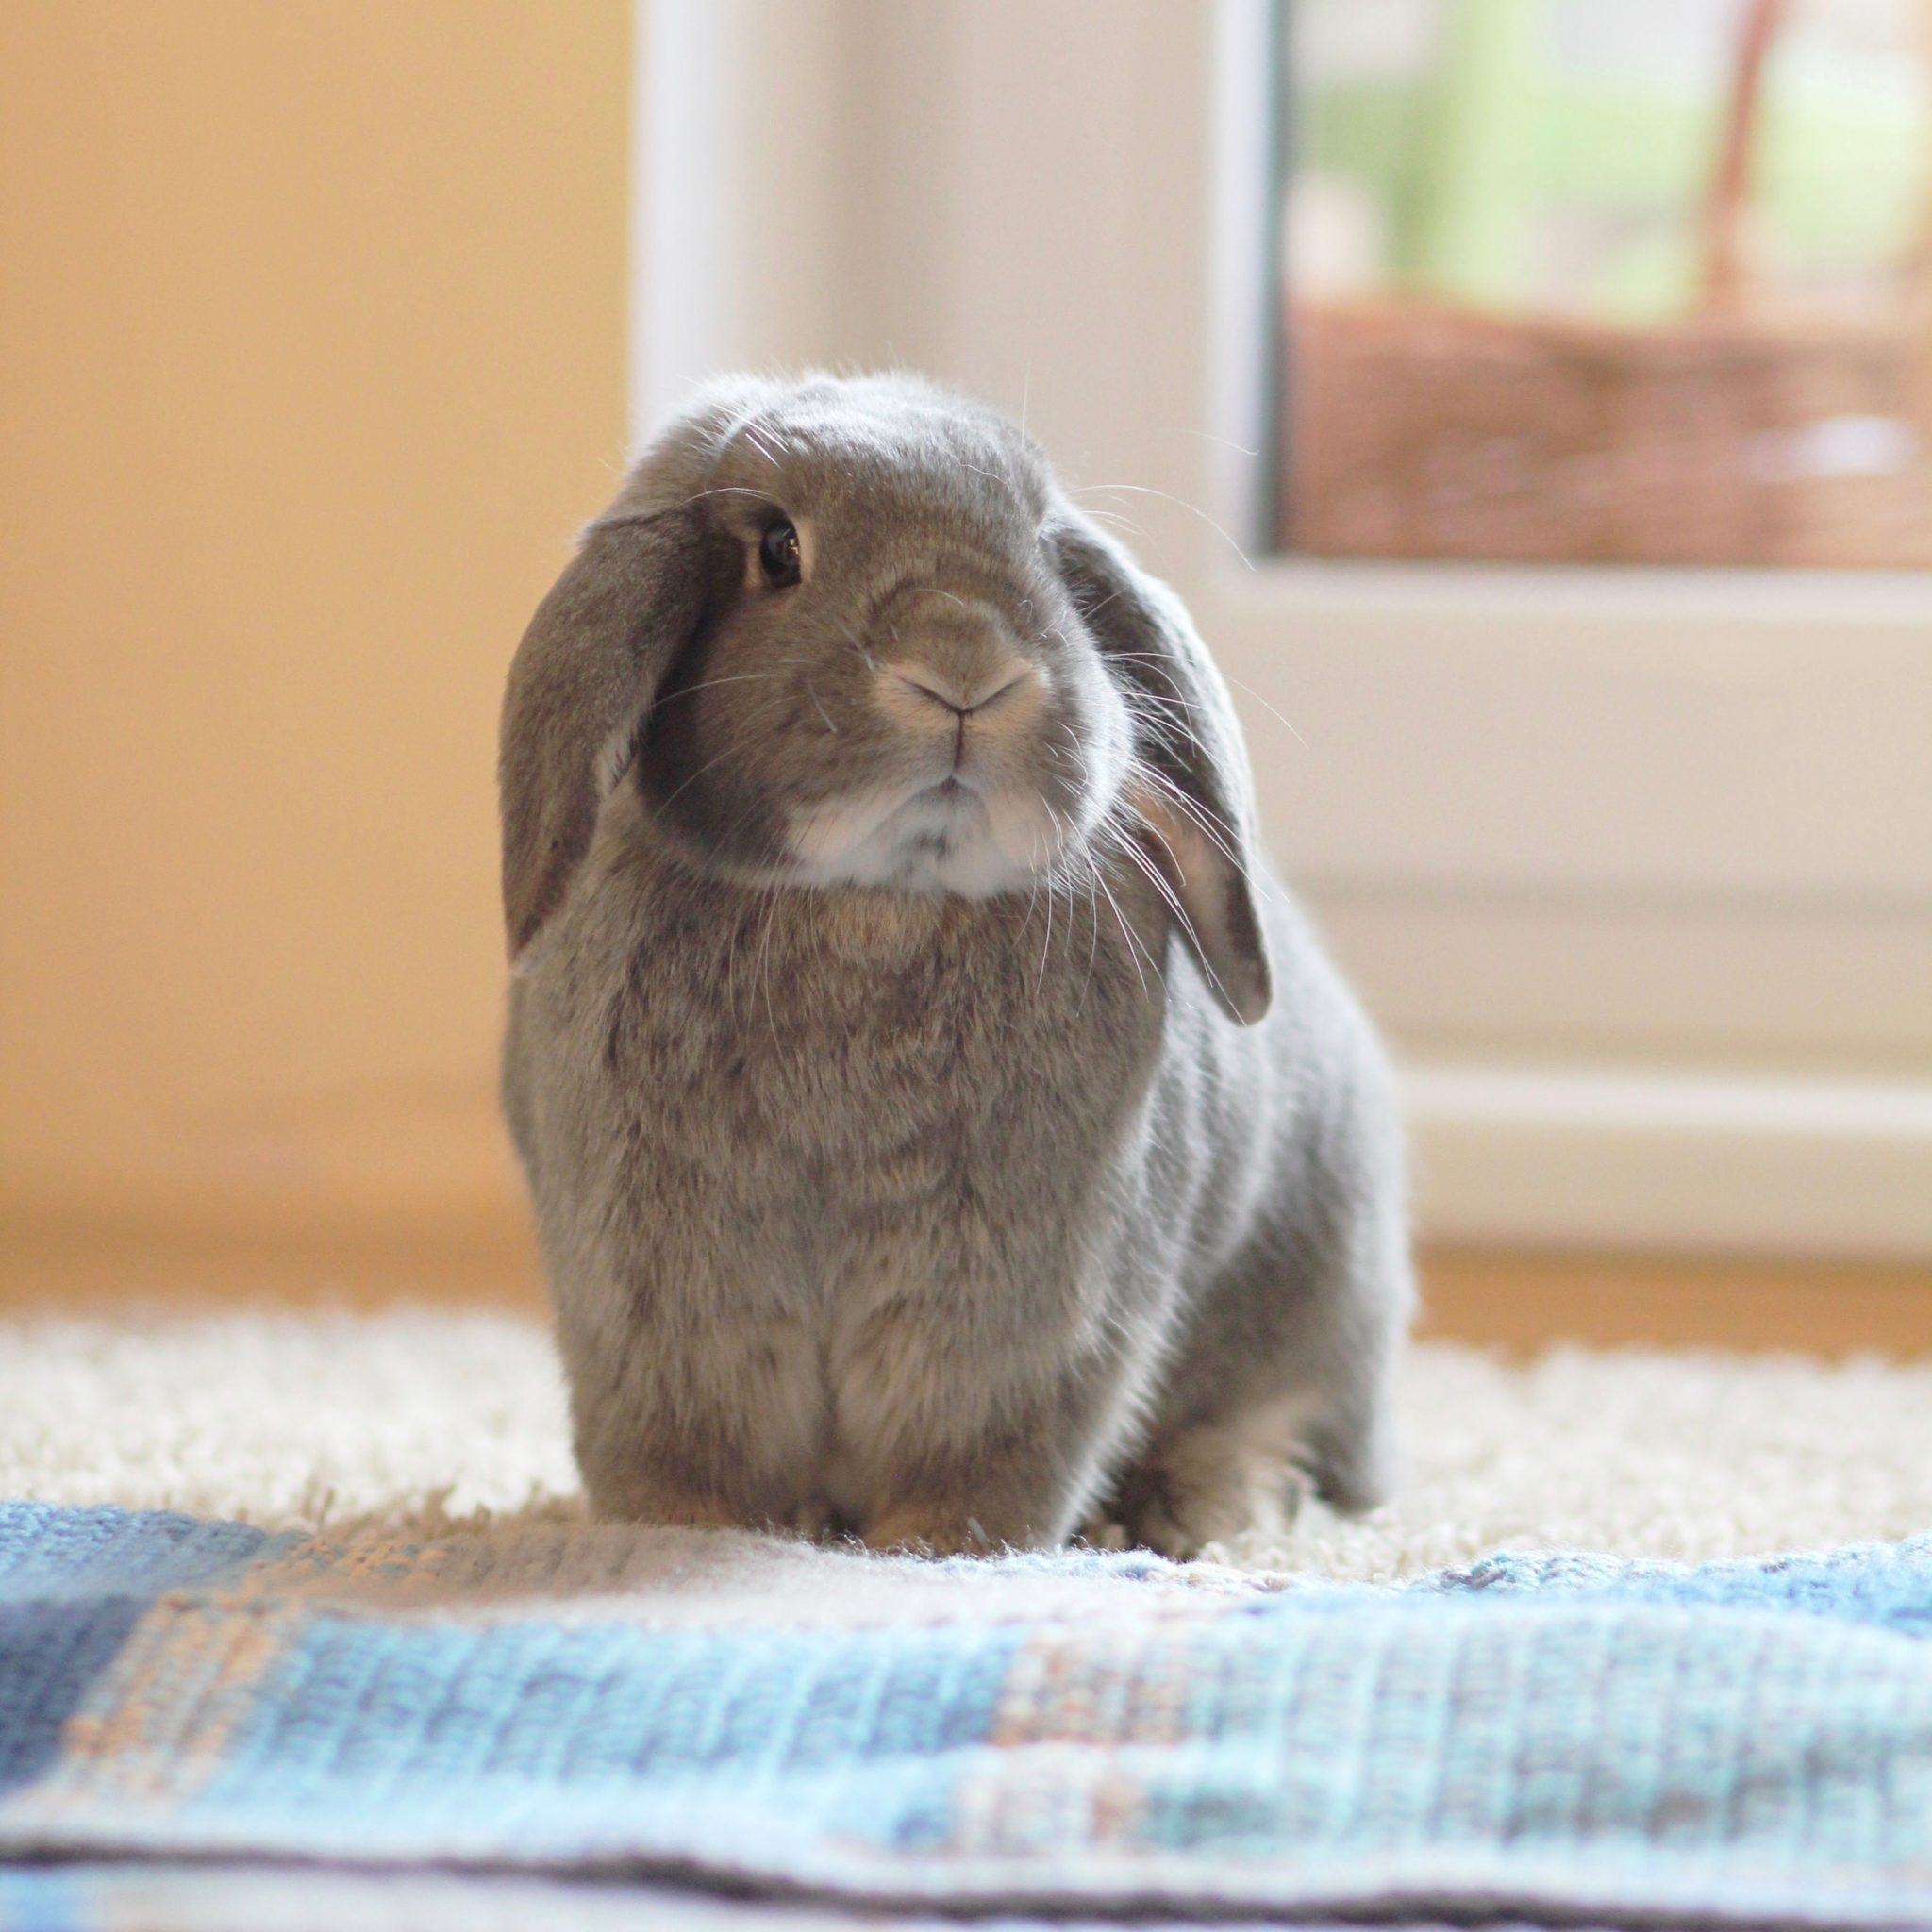 All About Rabbits Rescue